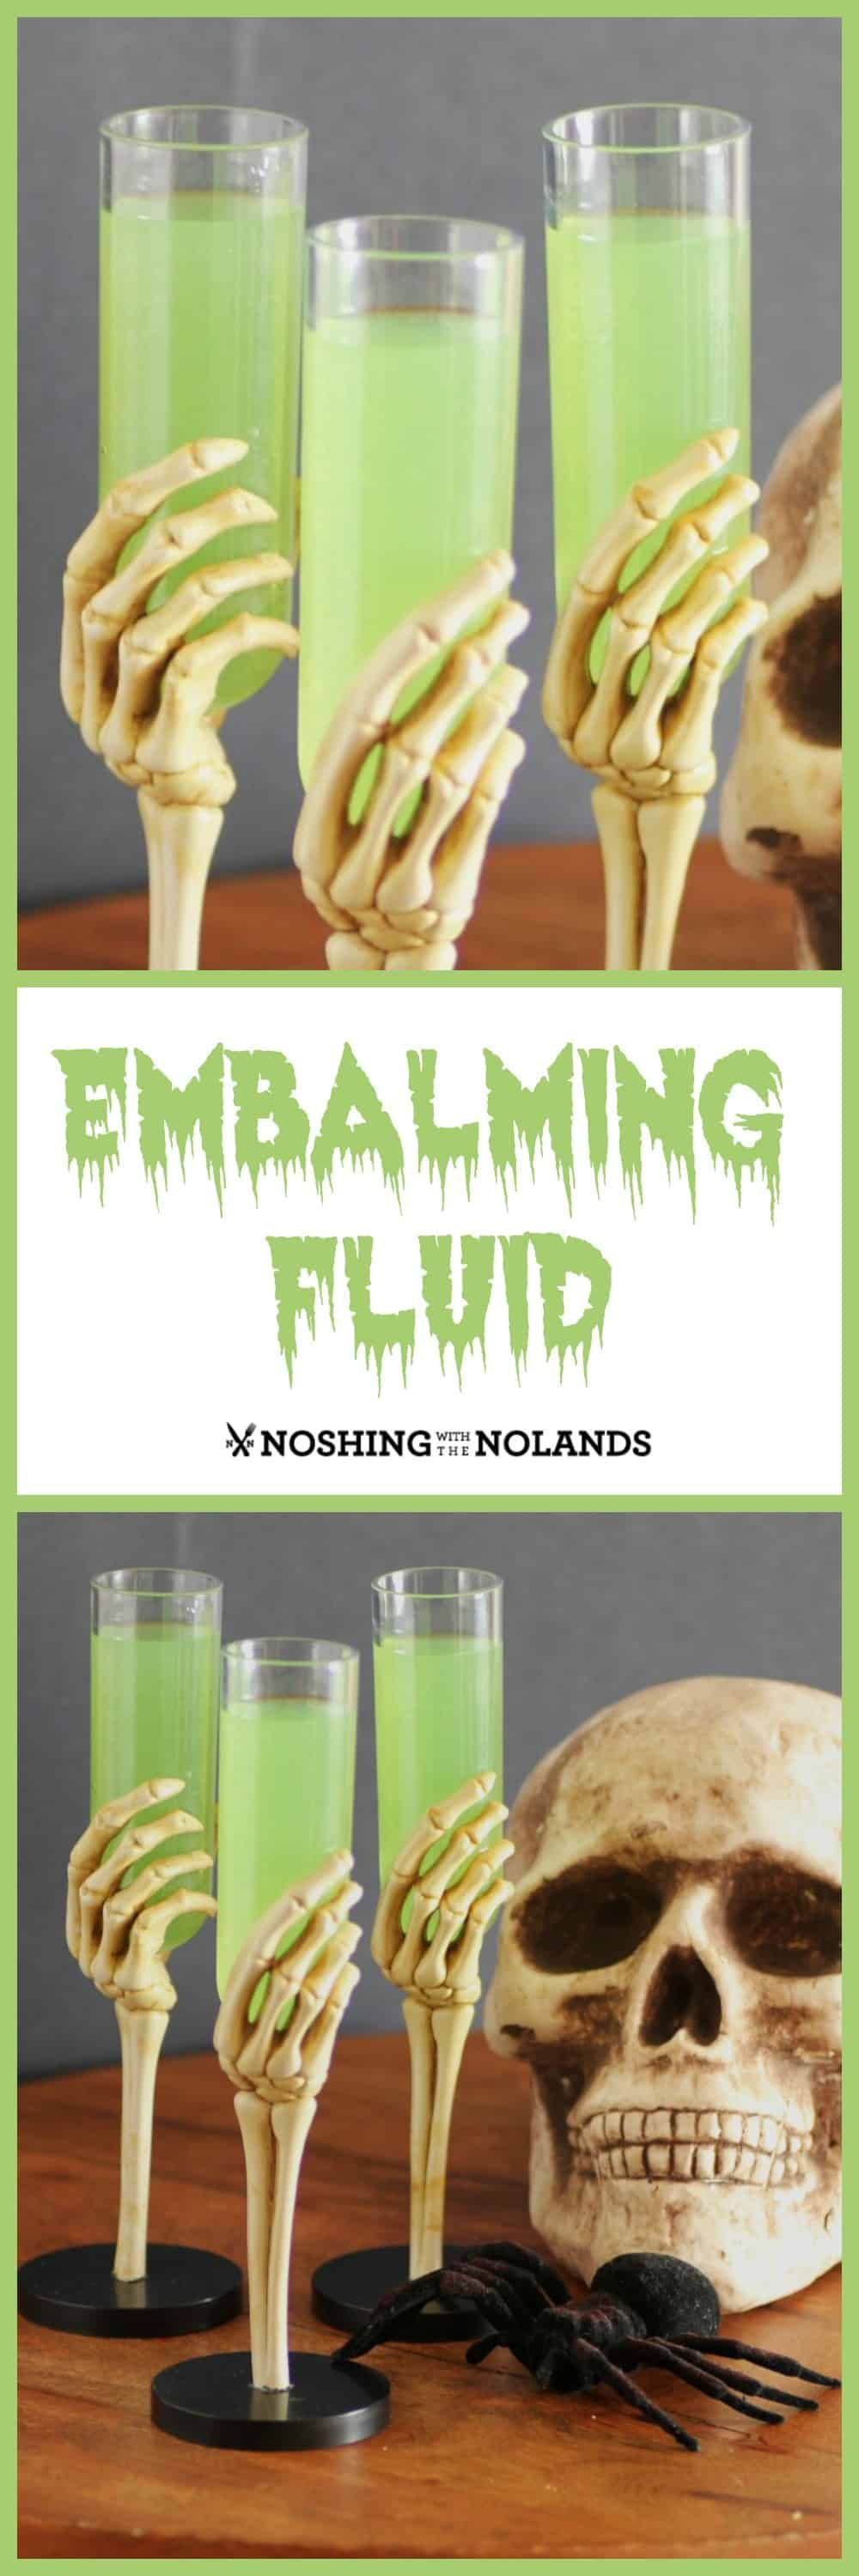 Embalming Fluid Cocktail for Halloween fun for adults